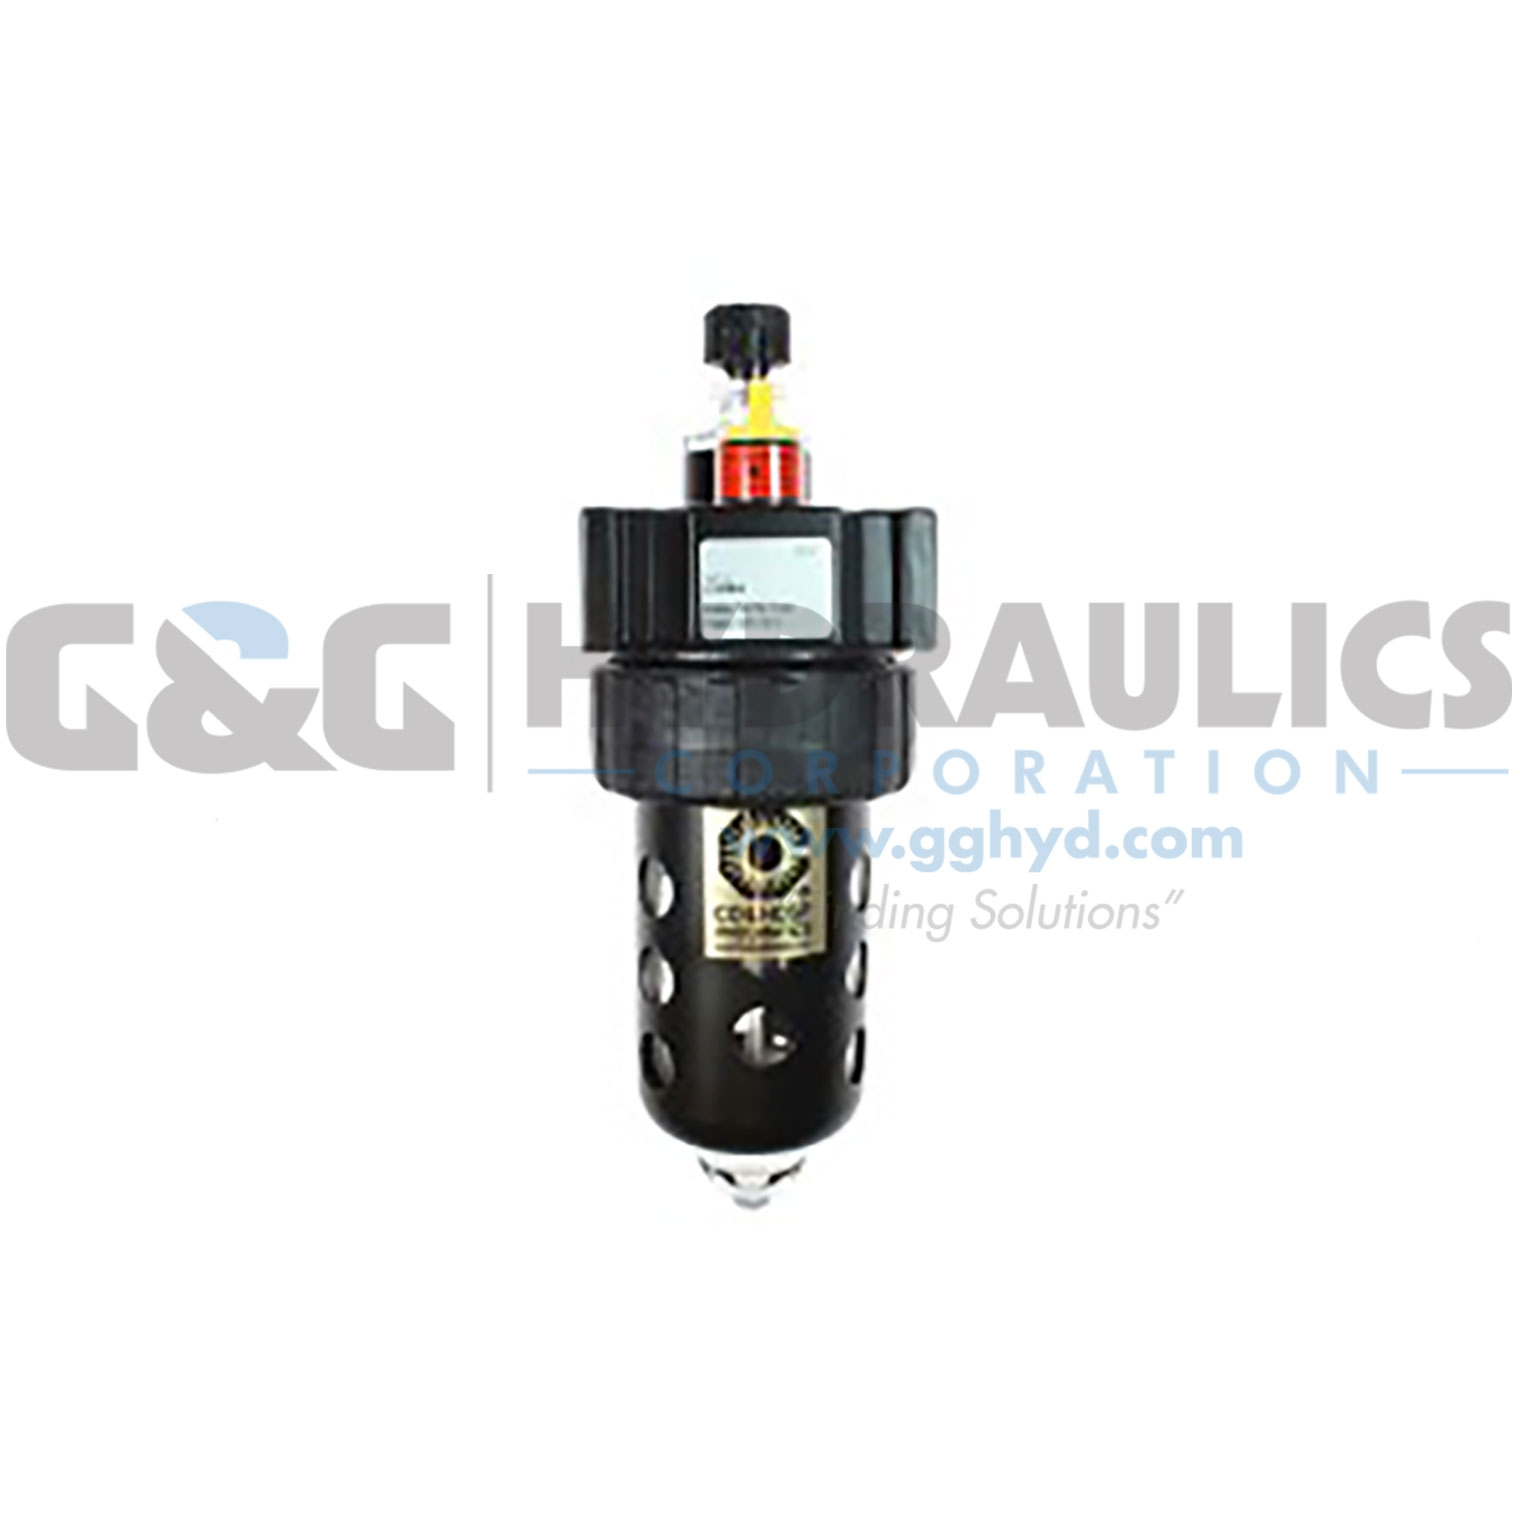 L380BG Coilhose 38 General Purpose Lubricator with Bowl Guard UPC #029292179980